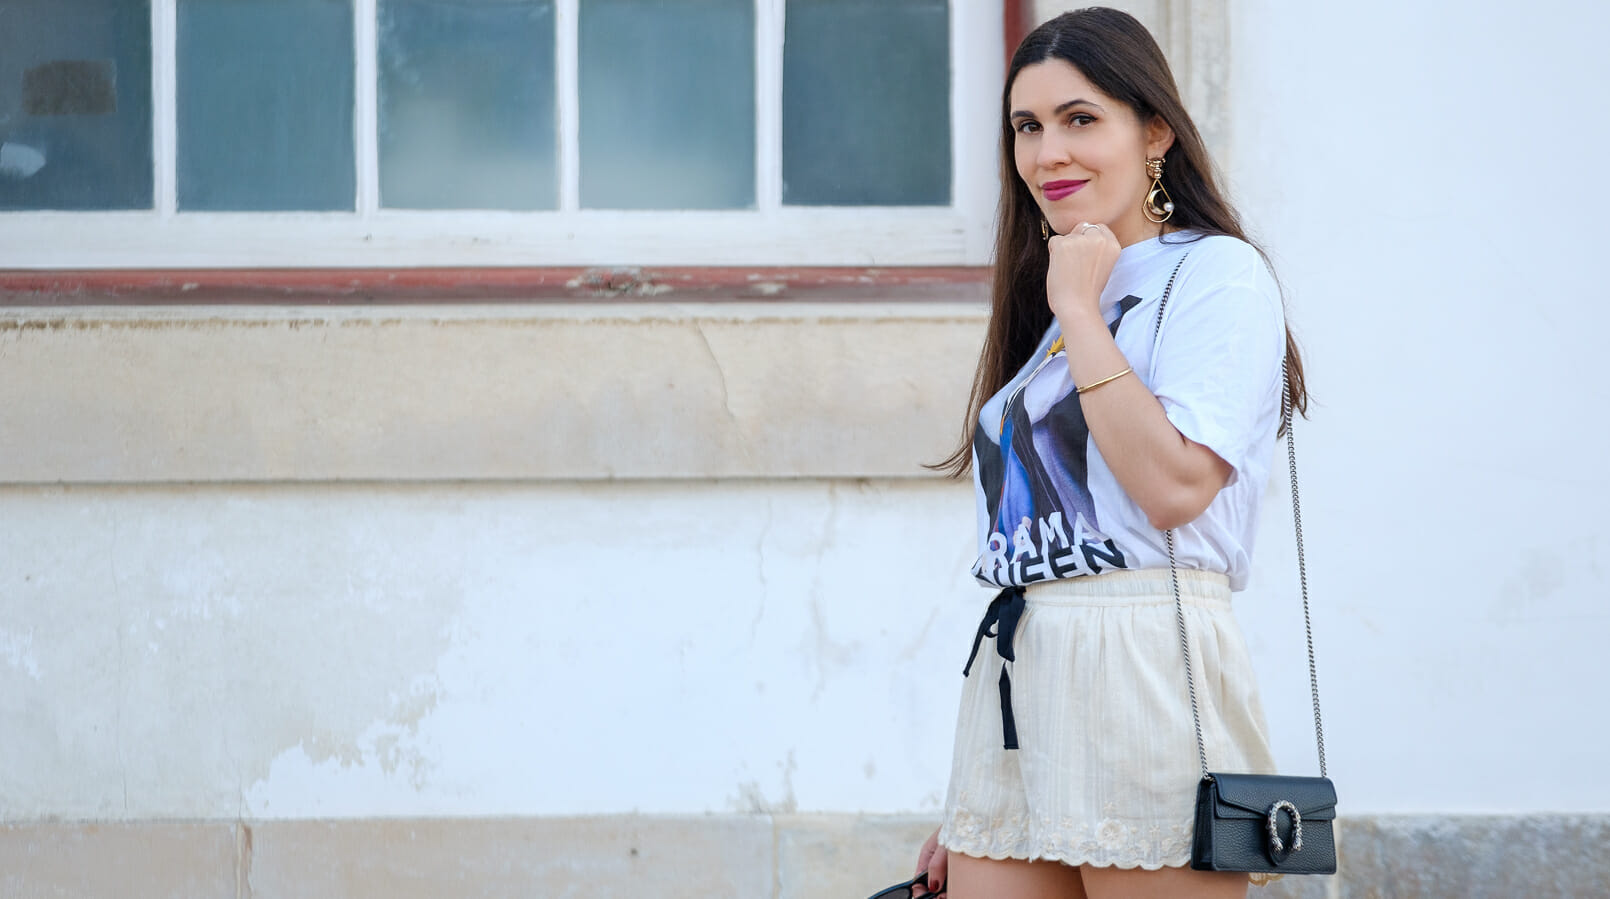 Le Fashionaire Drama Queen, me? t shirt evil queen drama queen t shirt white embroidered zara shorts mini dionysus gucci leather black bag gold lion bold mango earrings 2188F EN